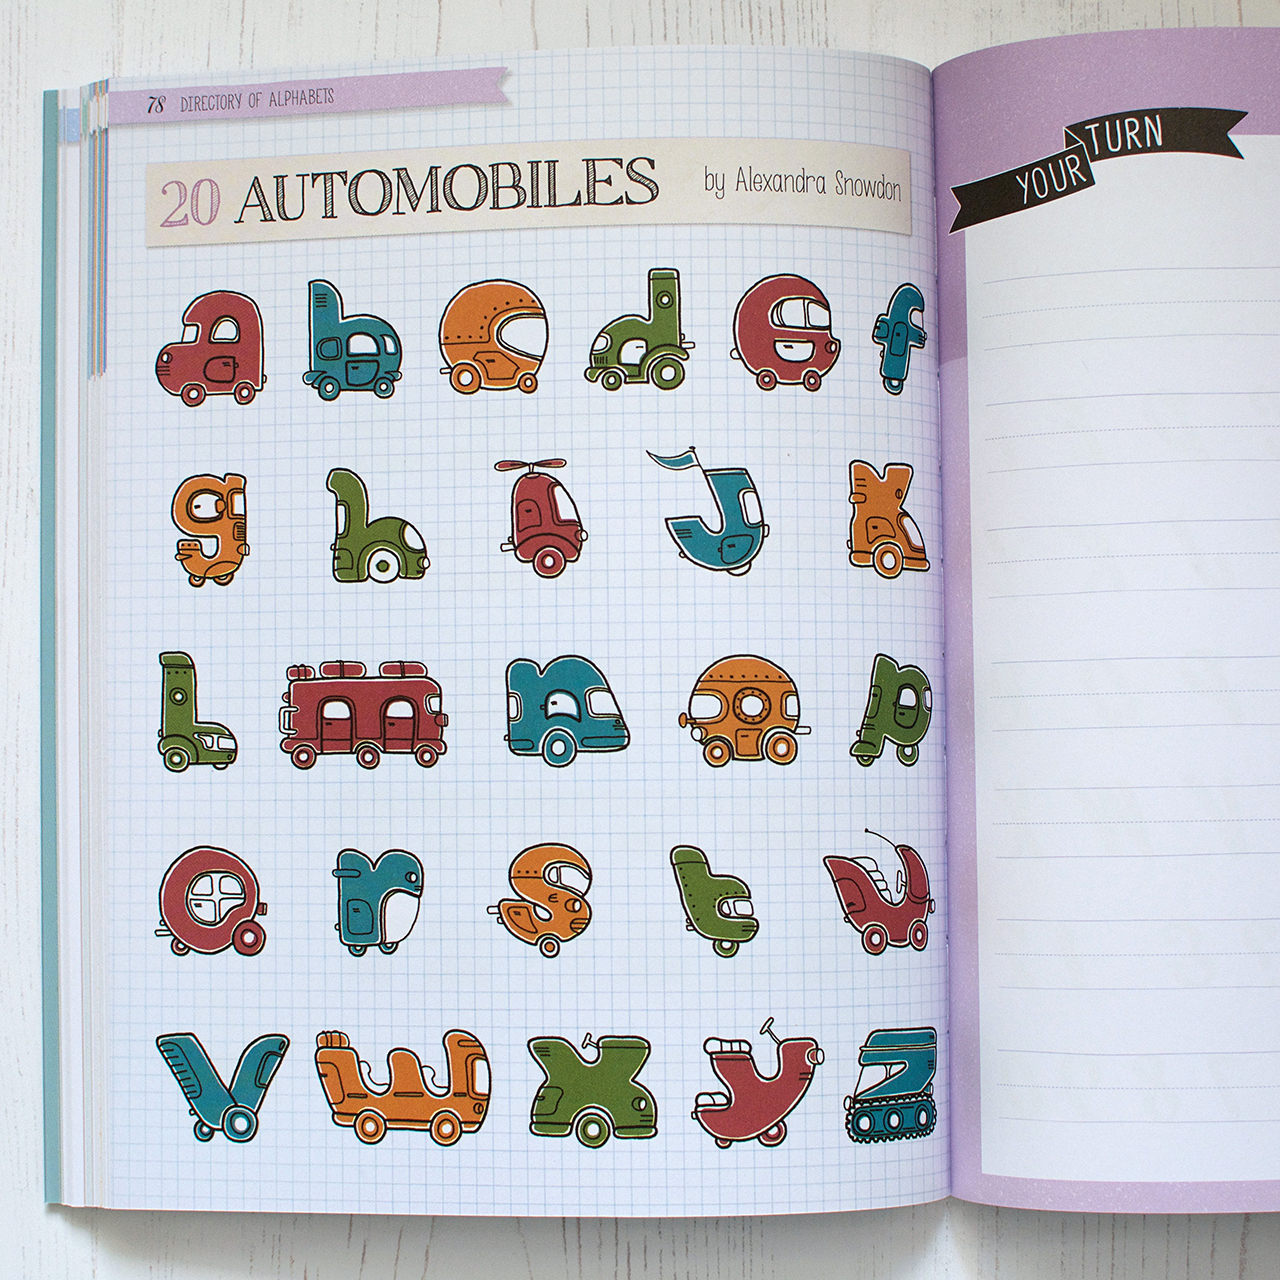 My hand illustrated automobile alphabet.